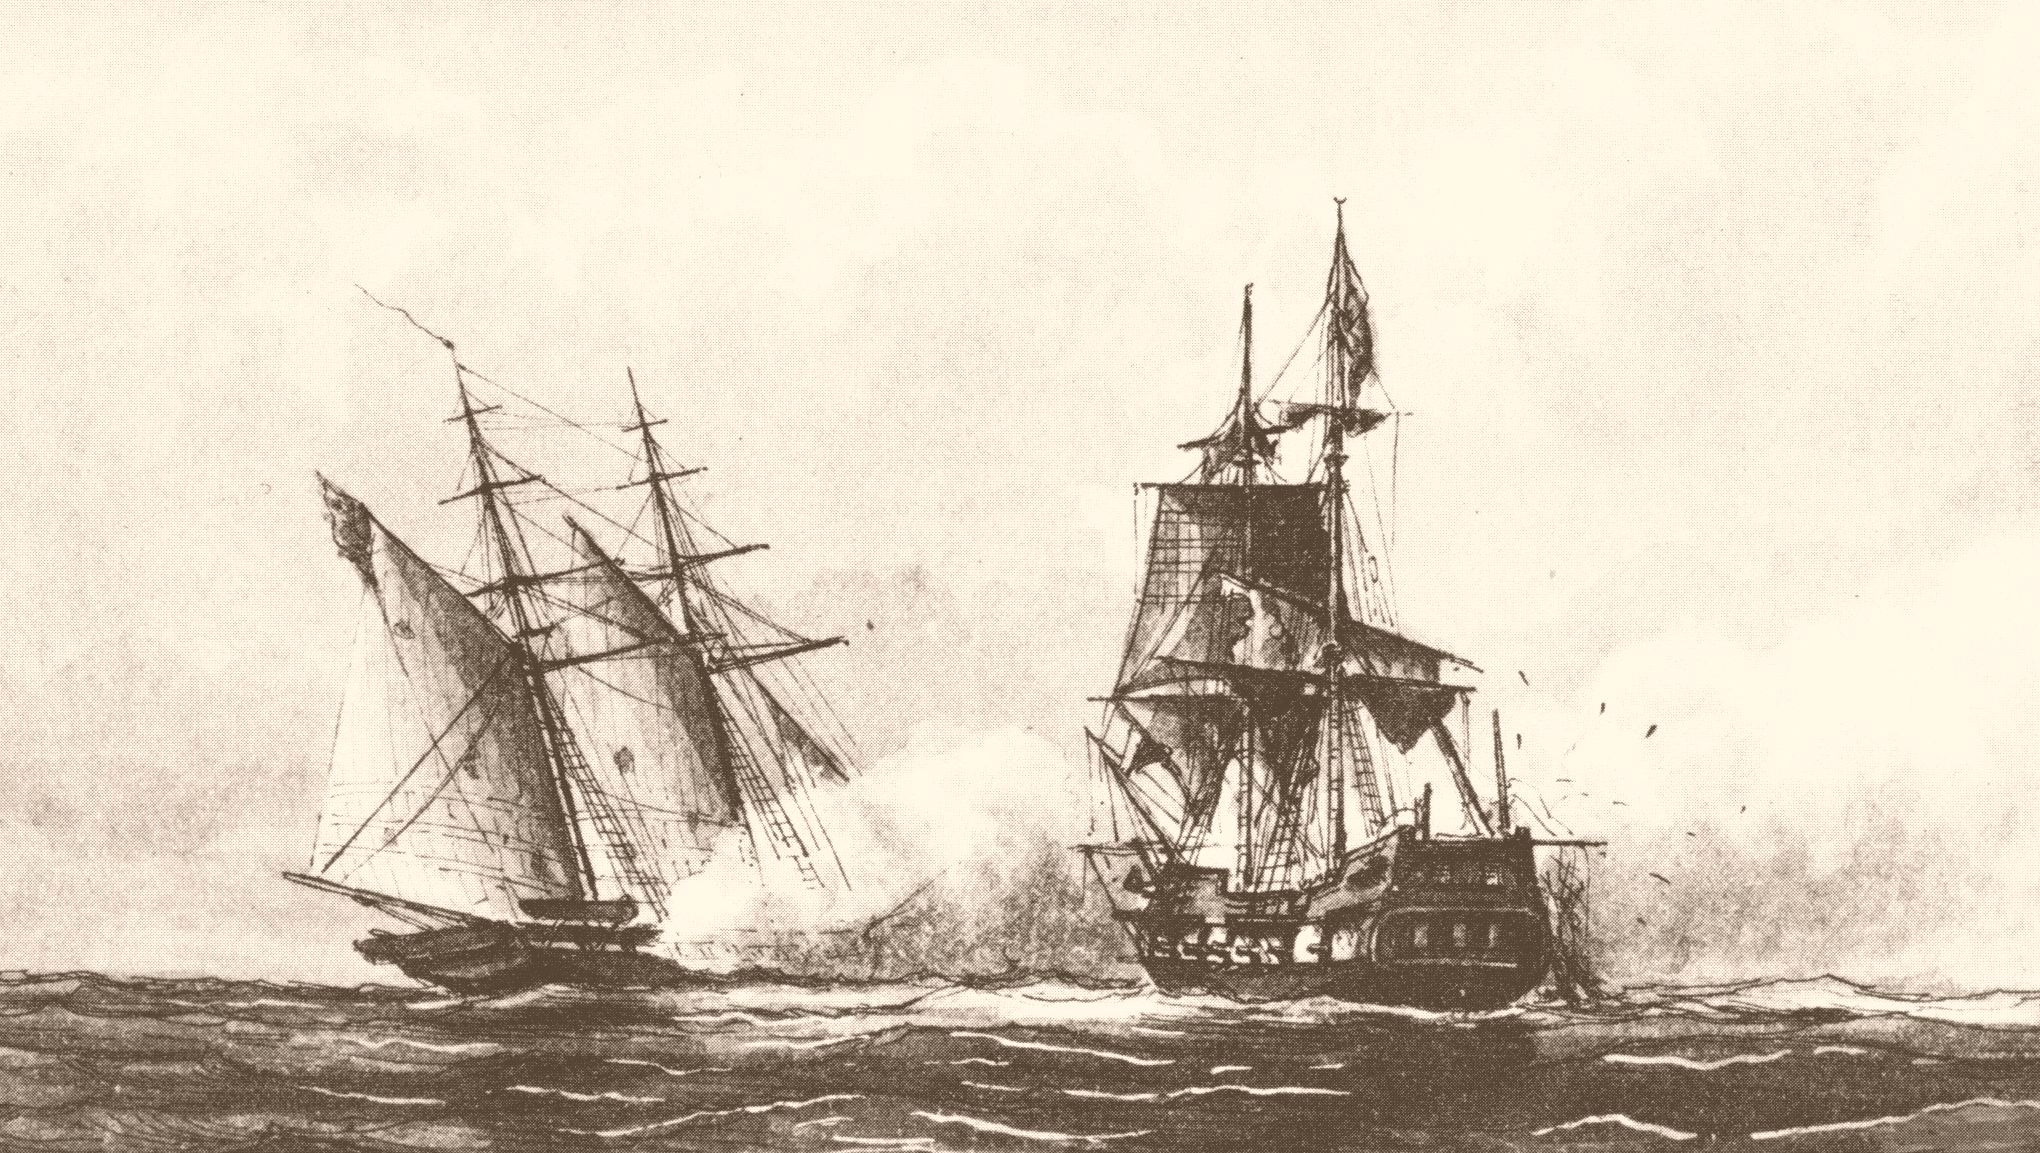 The schooner USS Enterprise captures the corsair Tripoli during battle.